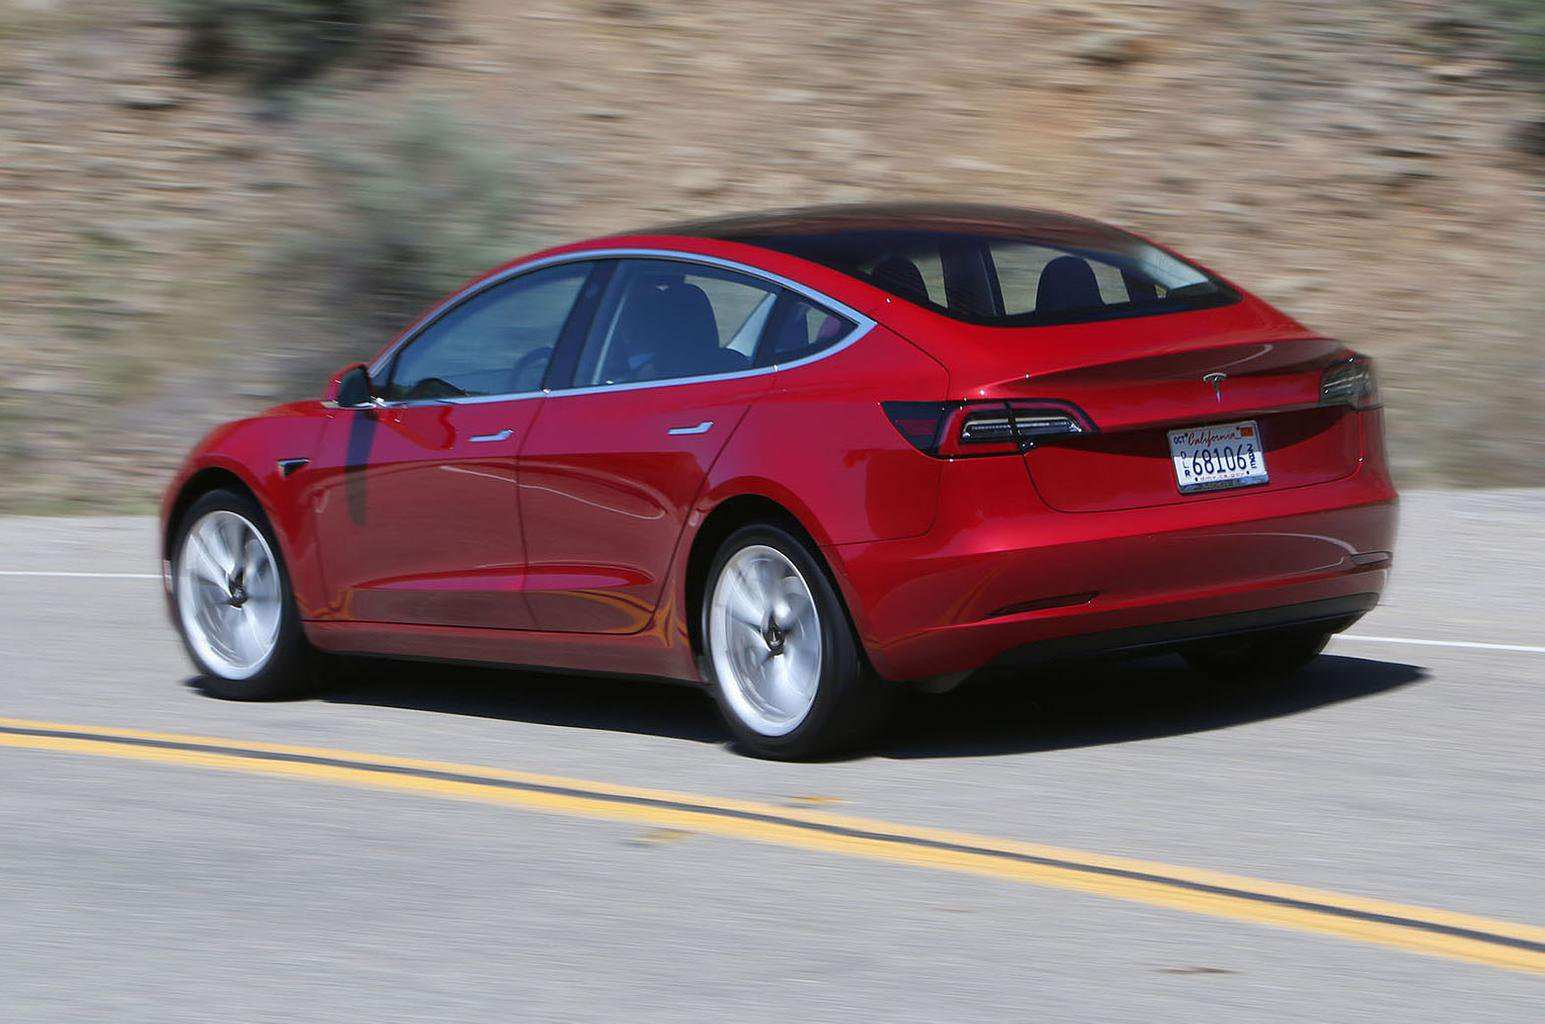 58 Gallery of 2019 Tesla Model 3 Research New for 2019 Tesla Model 3